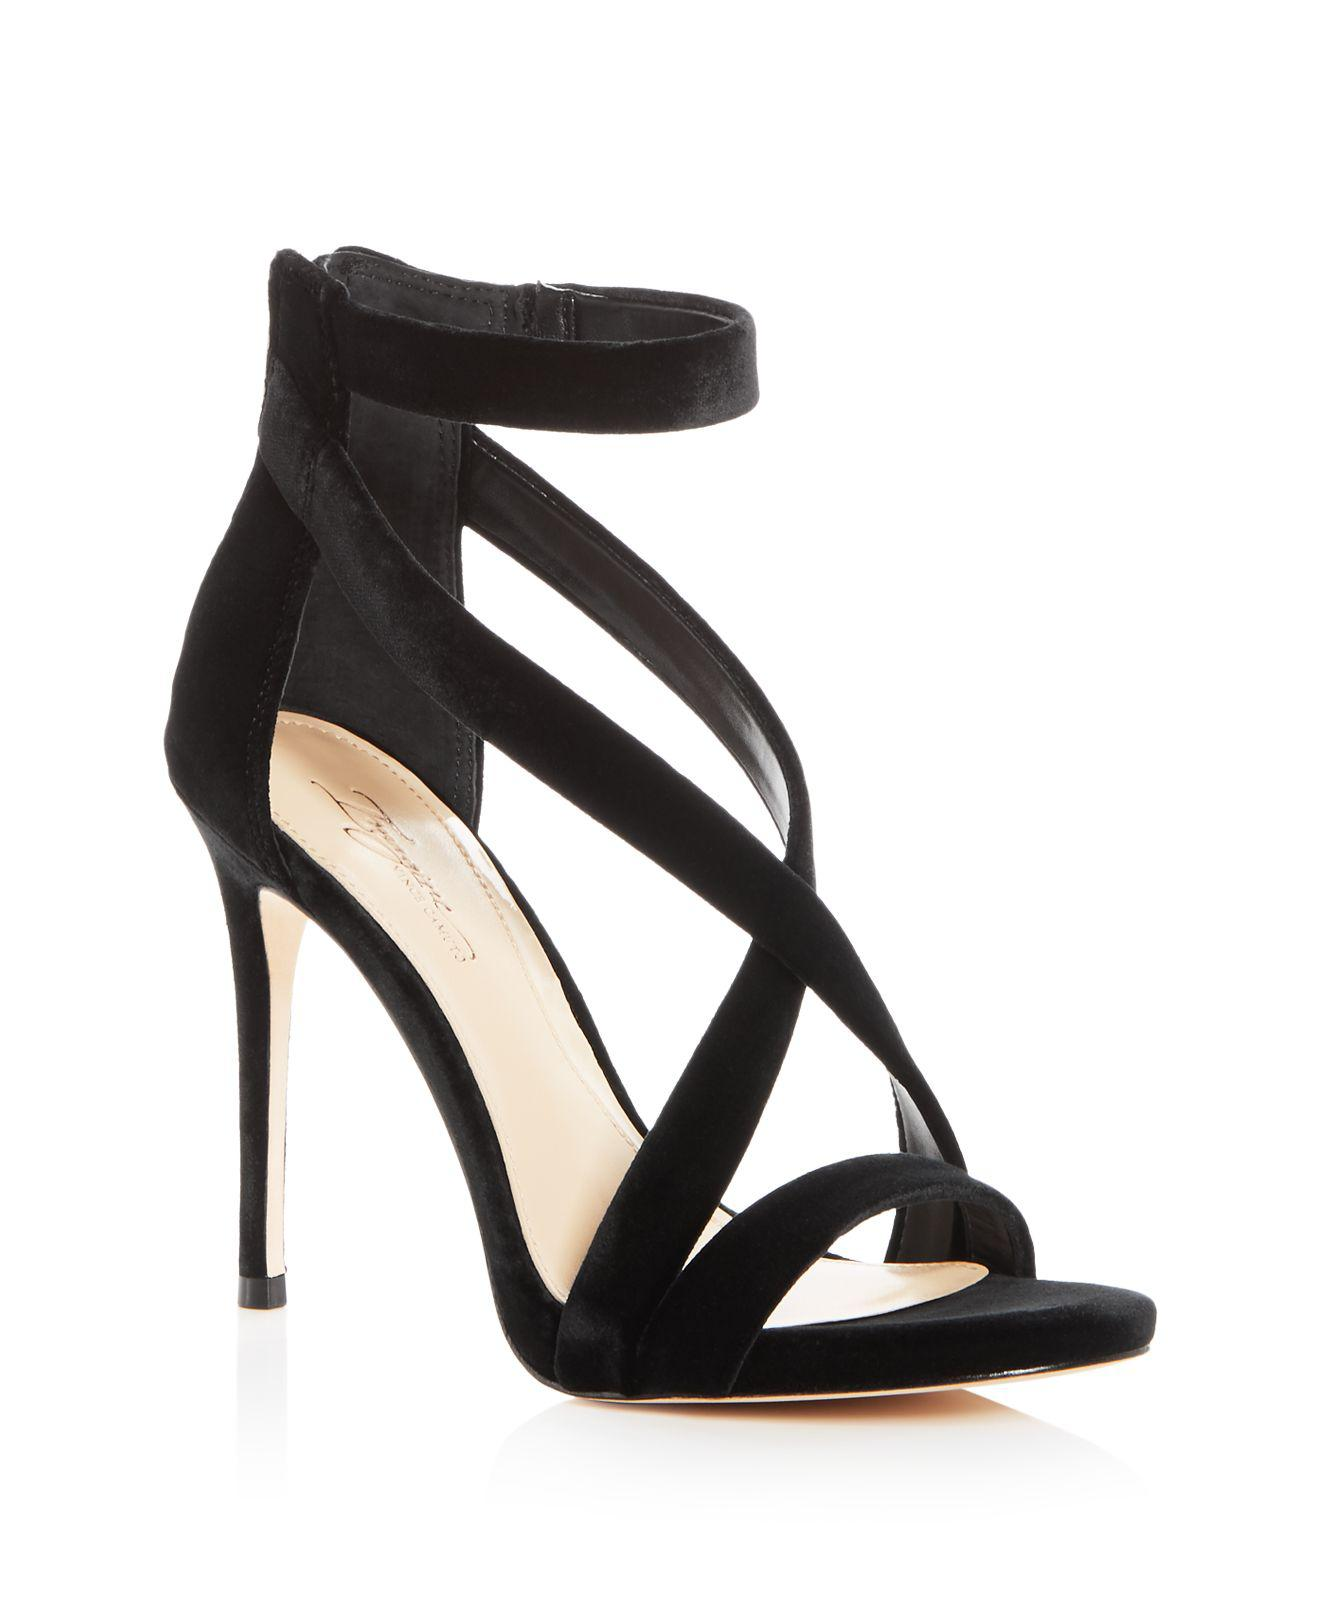 Vince Camuto Women's Paill Satin Crisscross High Heel Sandals bXhICxOpk